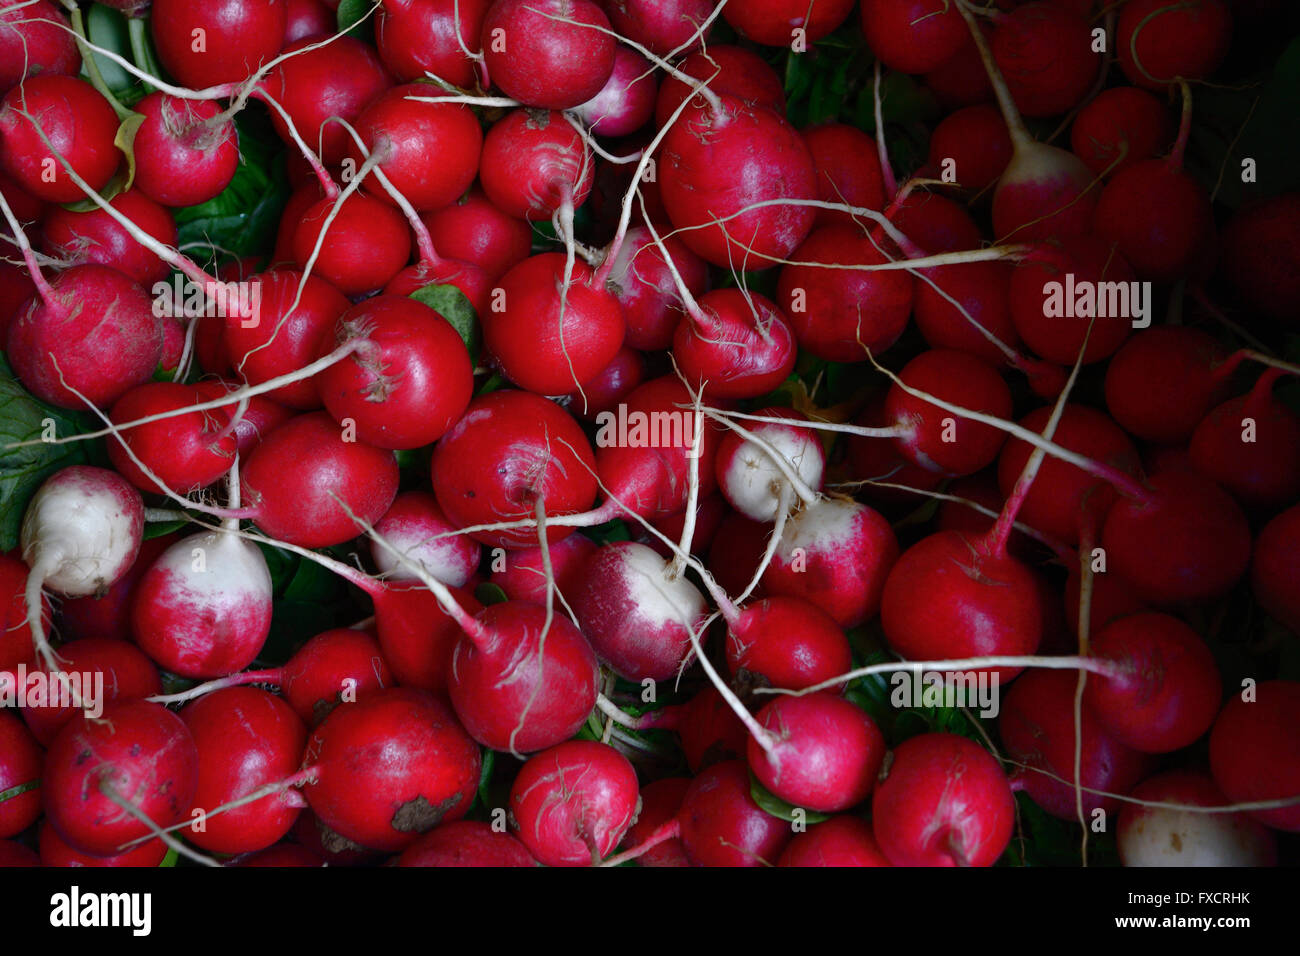 The radish, Raphanus sativus, is an edible root vegetable of the Brassicaceae family that was domesticated in Europe. - Stock Image